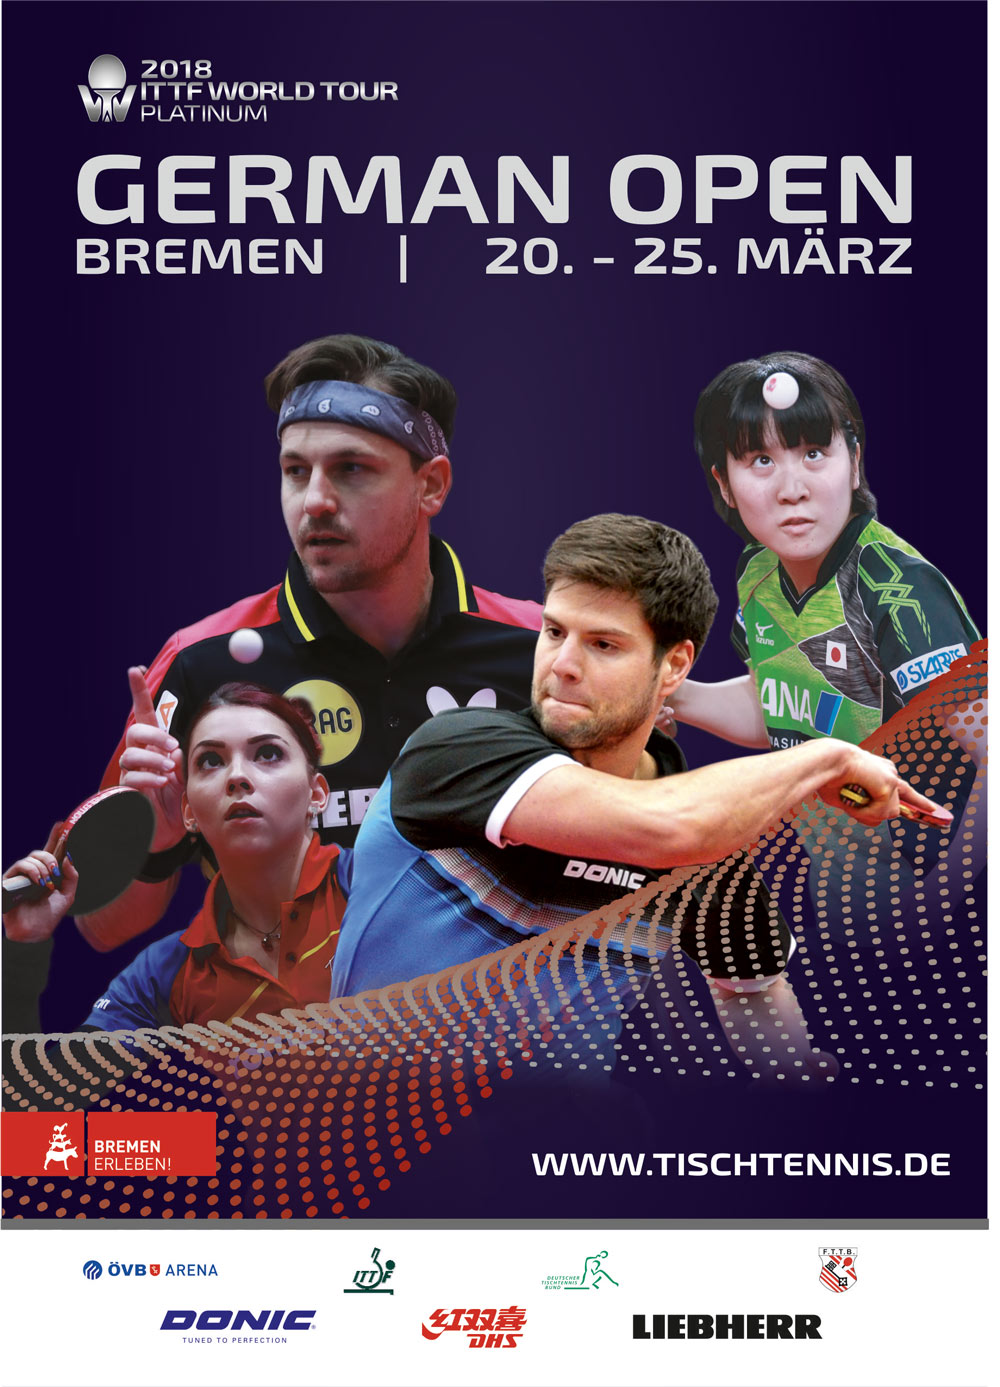 Affiche de l'Open d'Allemagne 2018 de tennis de table